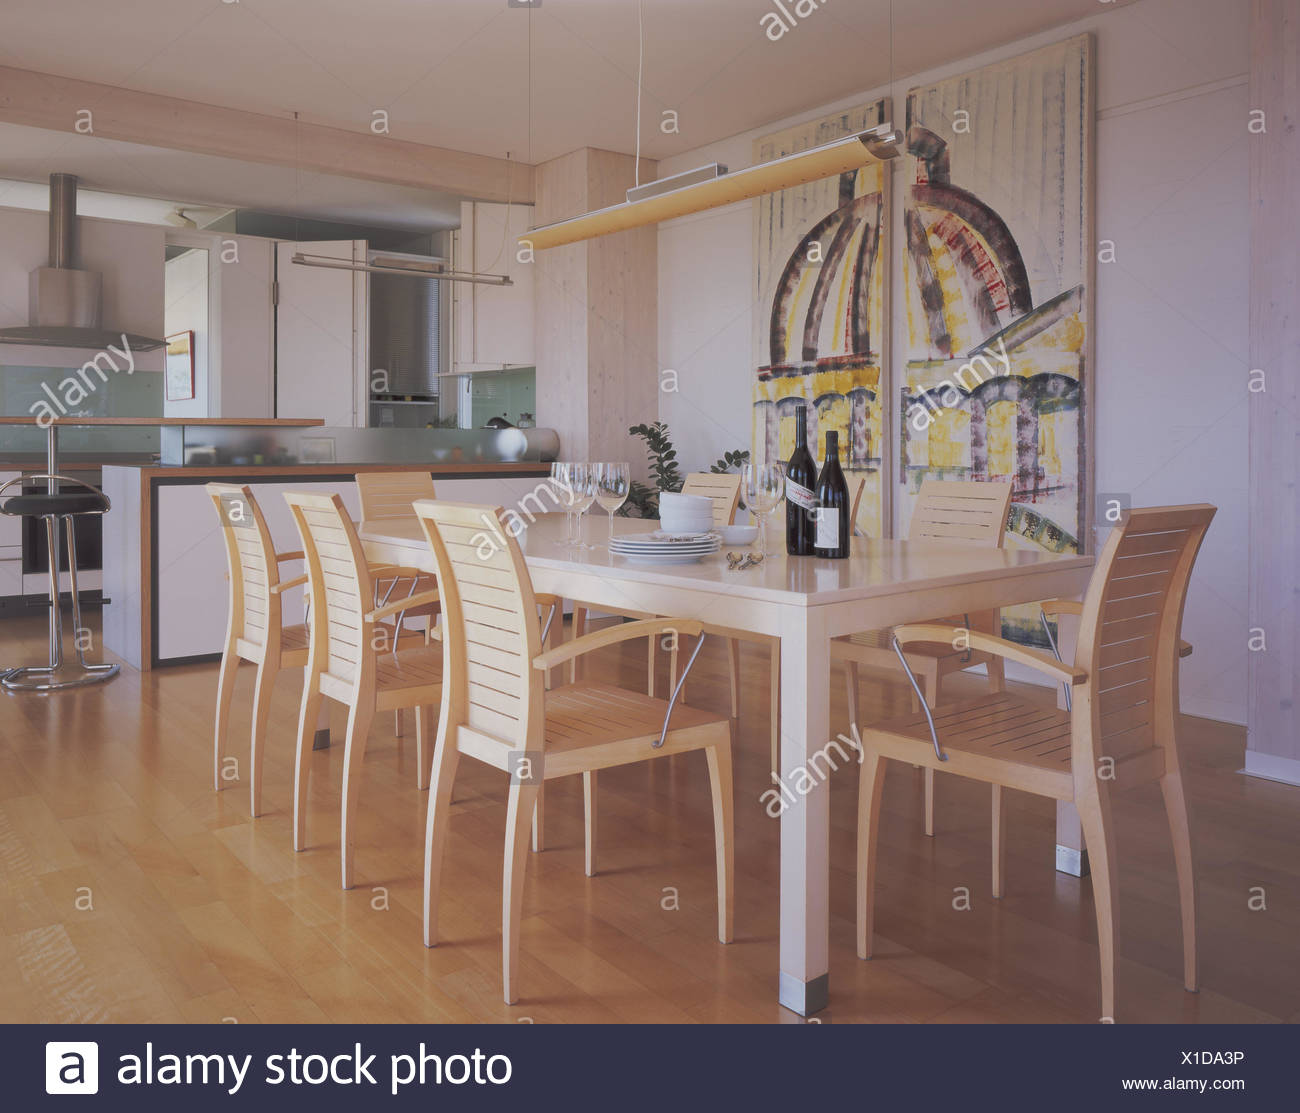 Dining Rooms, Table, Chairs, Generously, Dining Area, Ambience, Interior  Shot, Interior Arrangement, Residential Ambience, Home Decor, Affluent  Company, ...